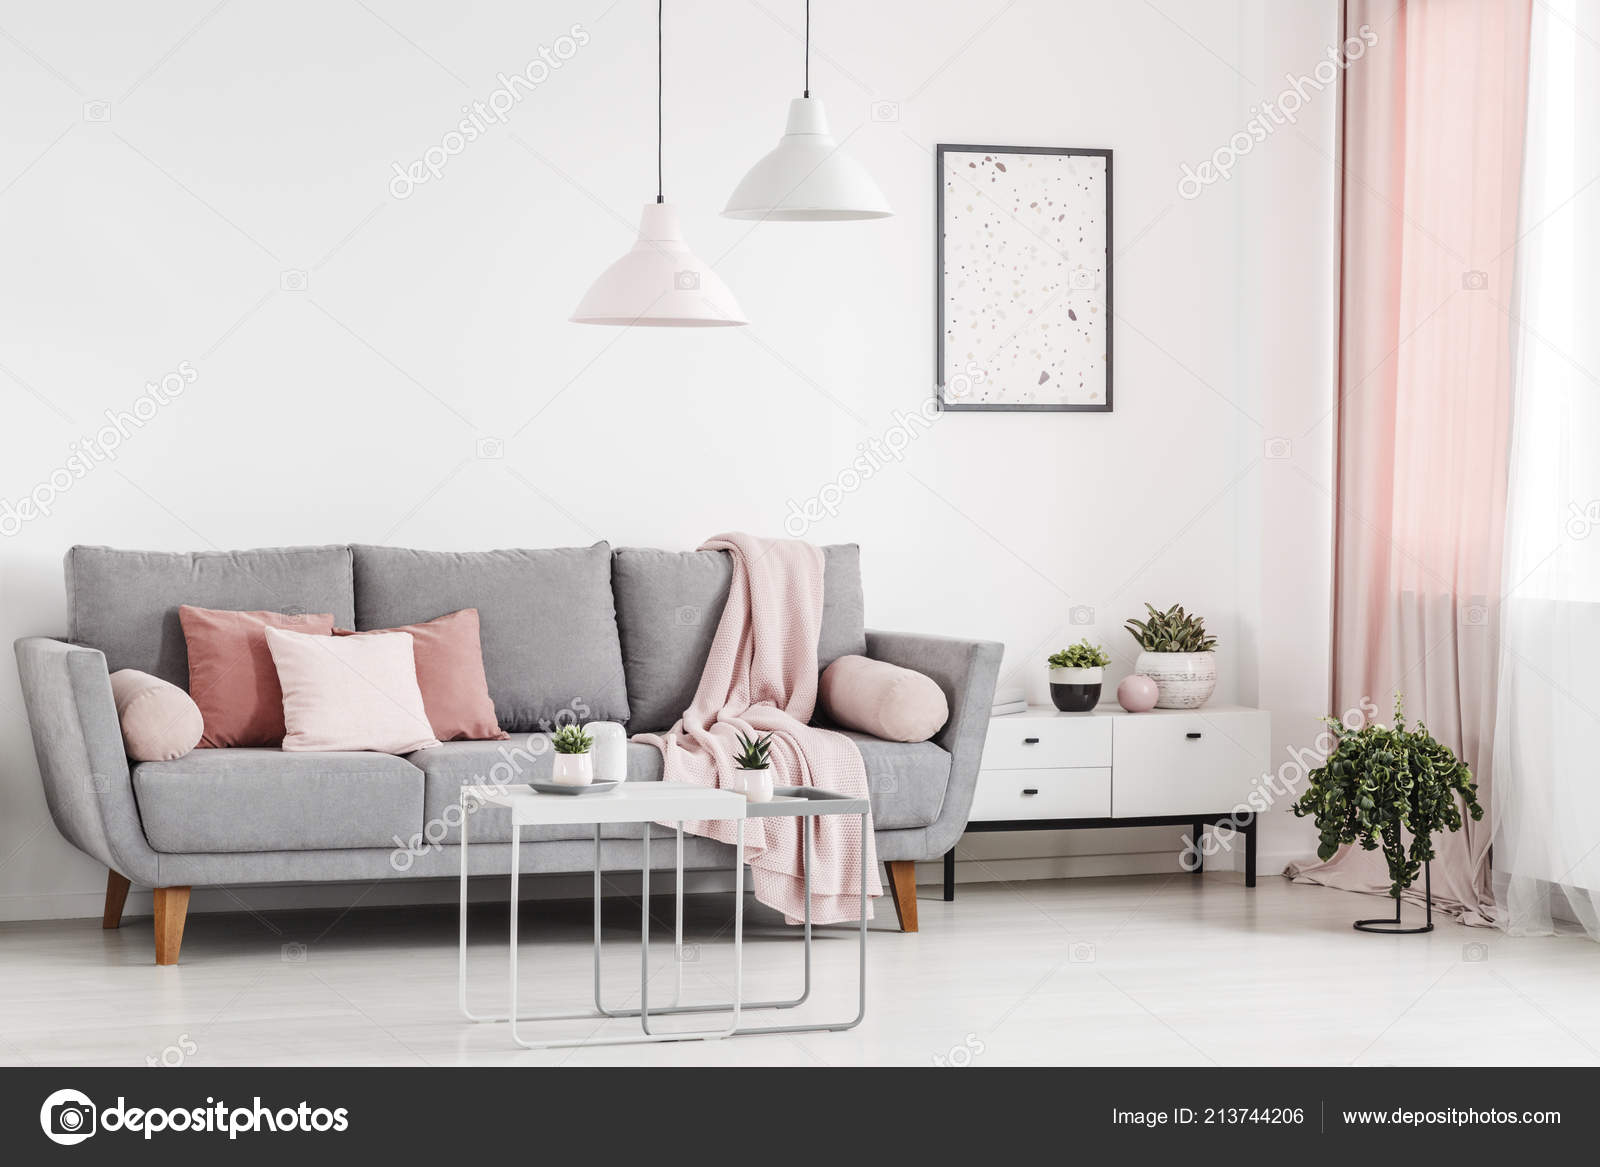 Surprising Pink Pillows Grey Couch White Apartment Interior Poster Andrewgaddart Wooden Chair Designs For Living Room Andrewgaddartcom